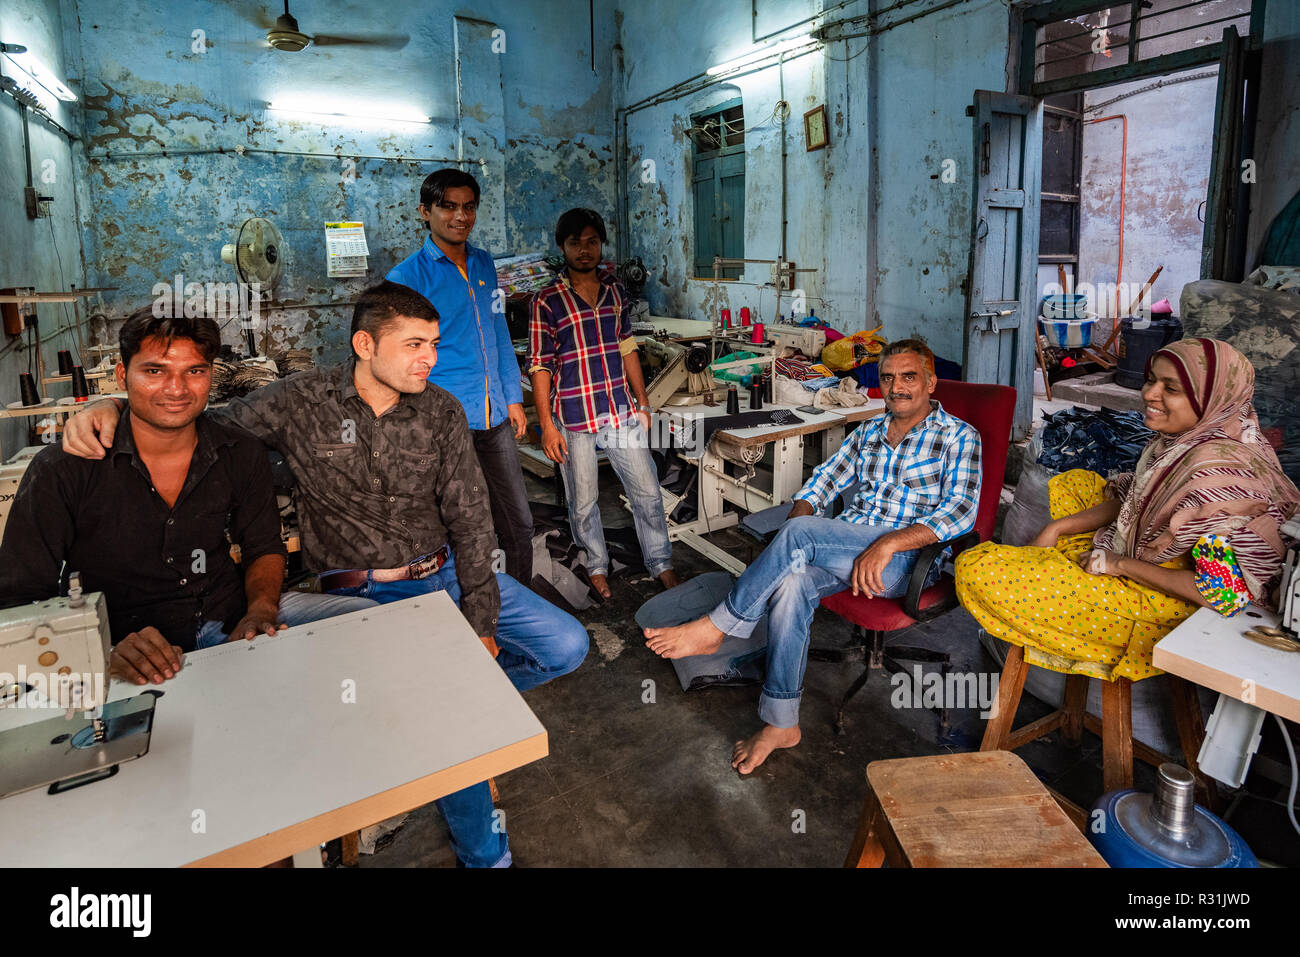 An egg retail wholesaler in Ahmedabad take a moment to pause for a photograph. Gujarat, India. - Stock Image